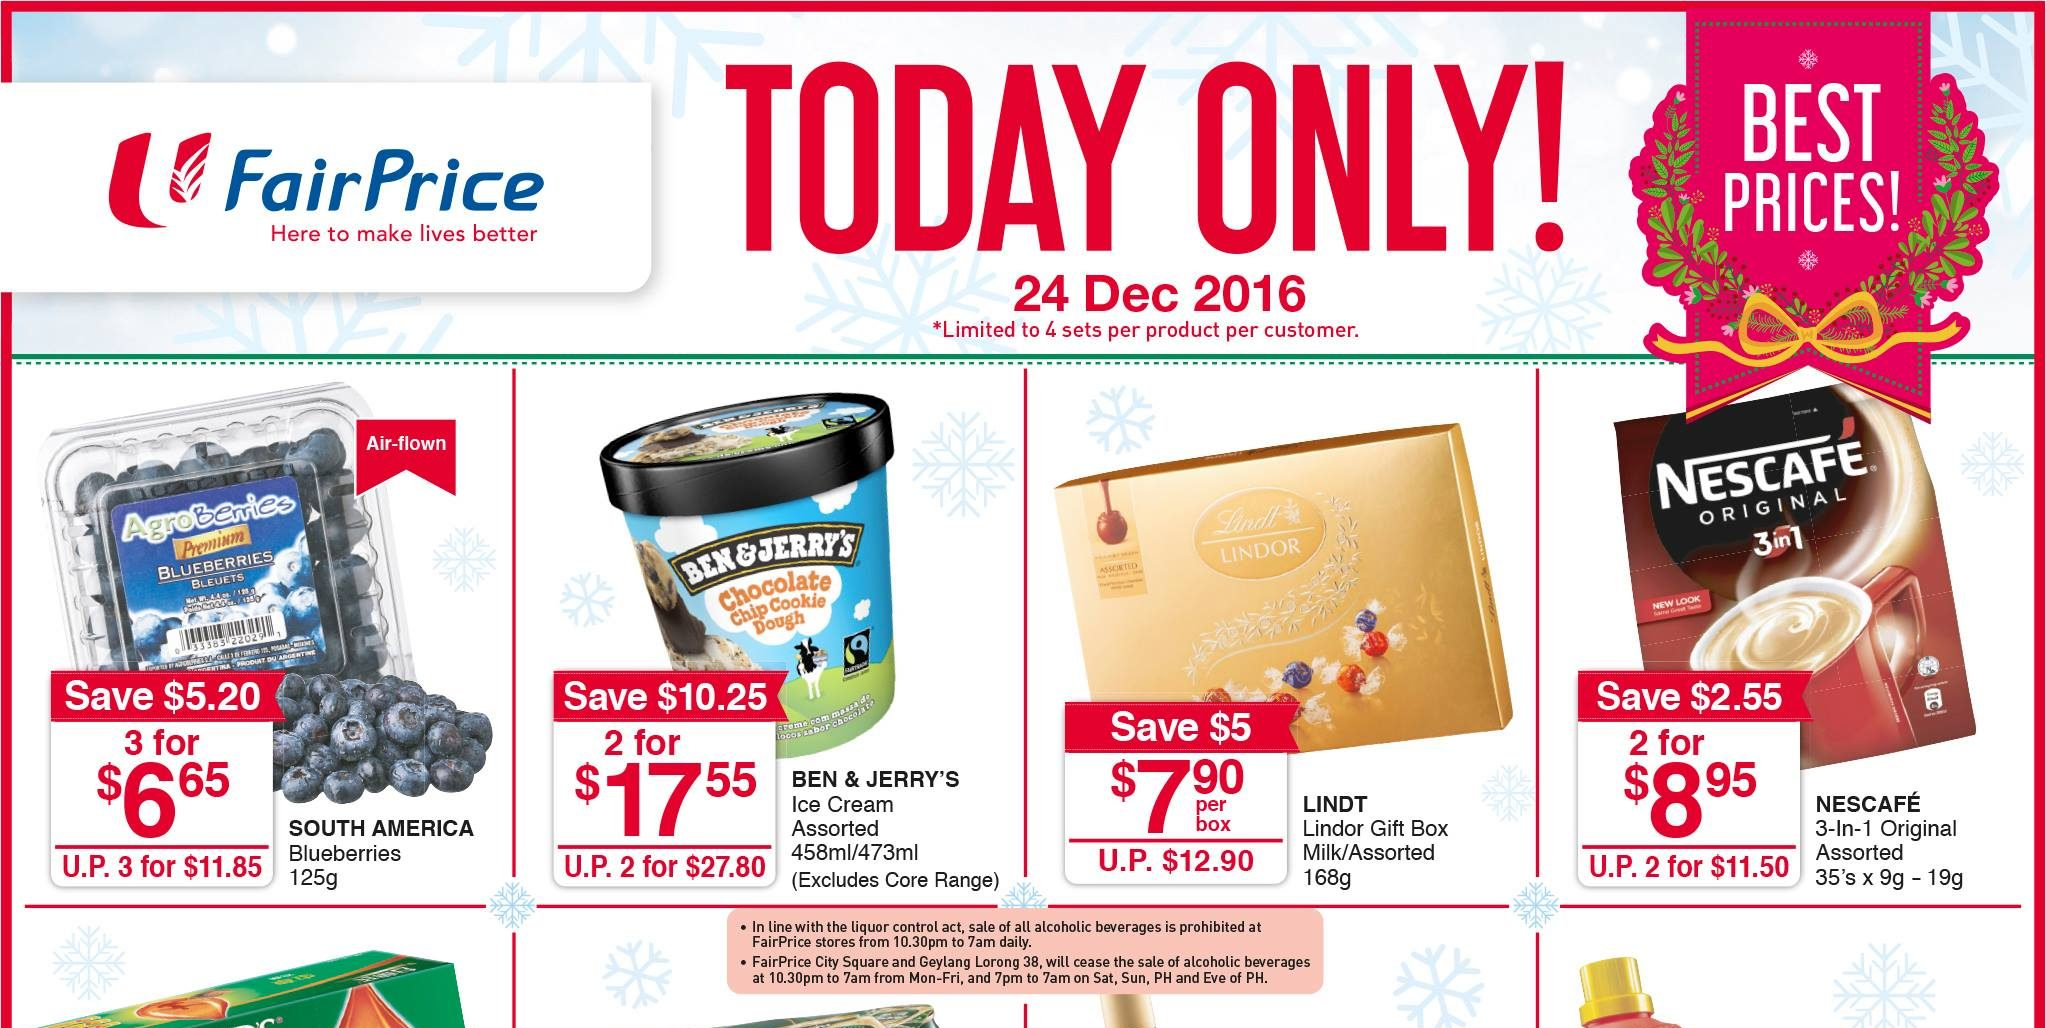 NTUC FairPrice Singapore Christmas Specials One Day Only Promotion 24 Dec 2016